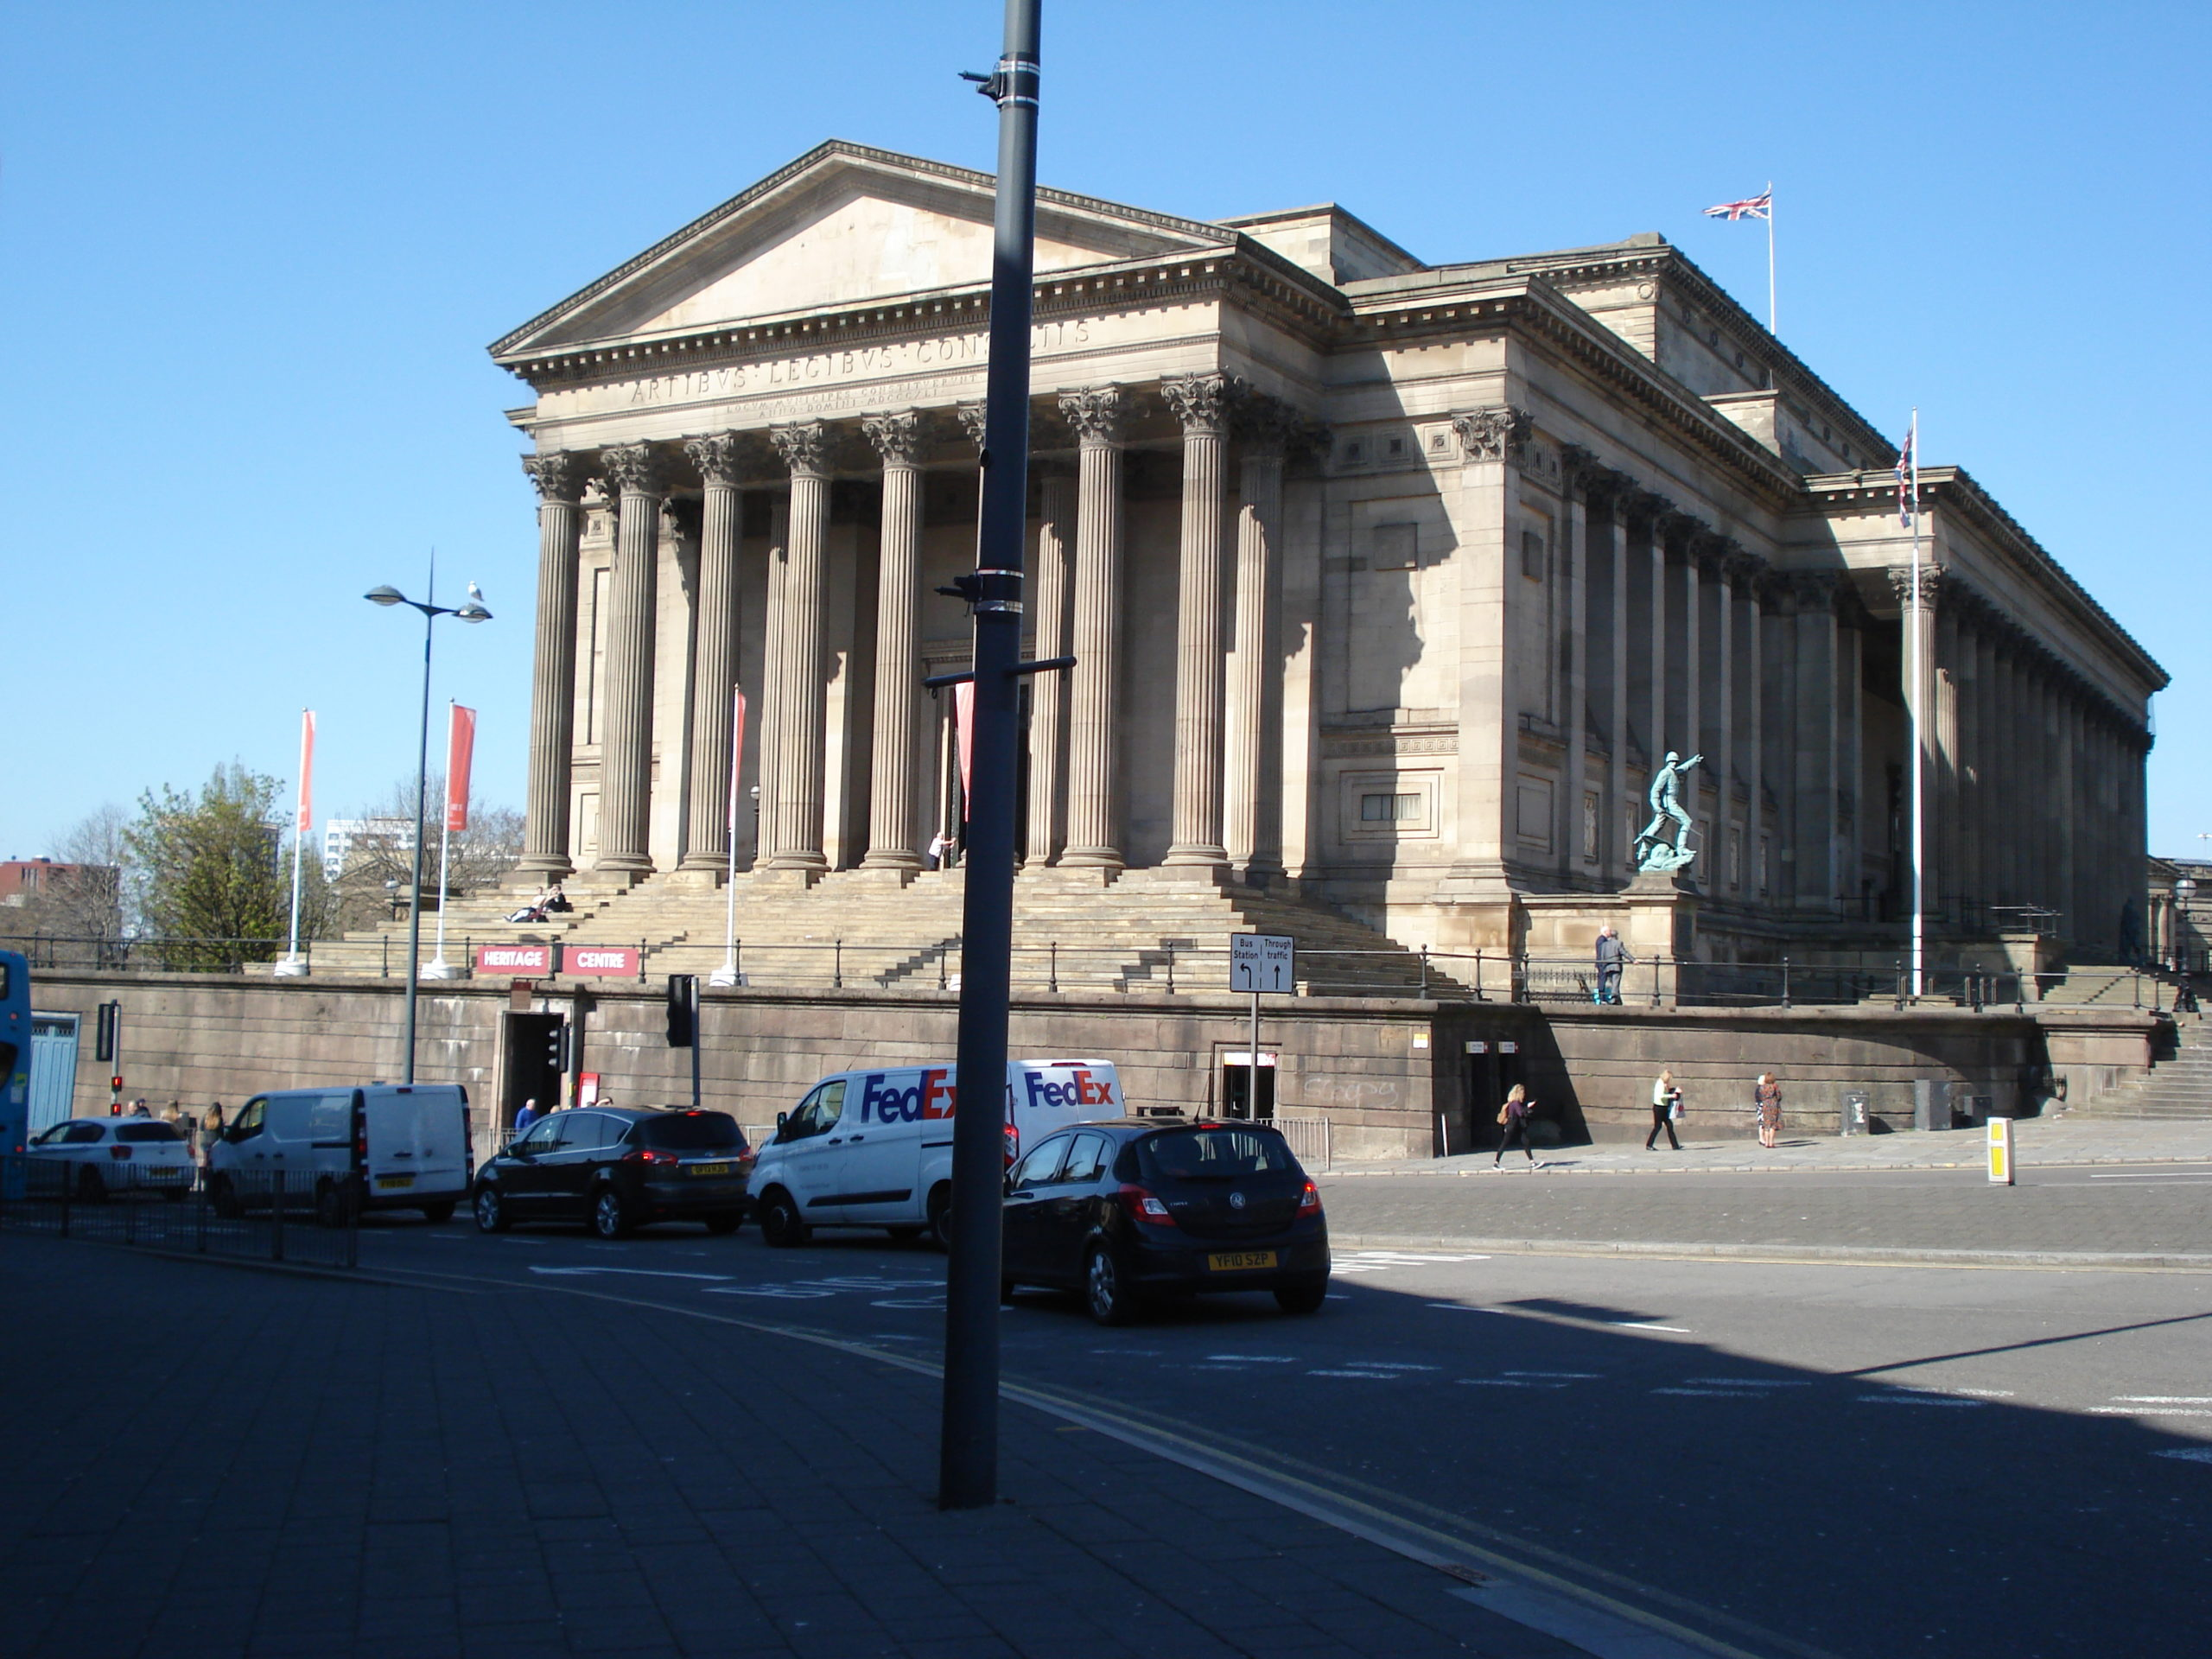 St George's Hall, Lime Street - Now